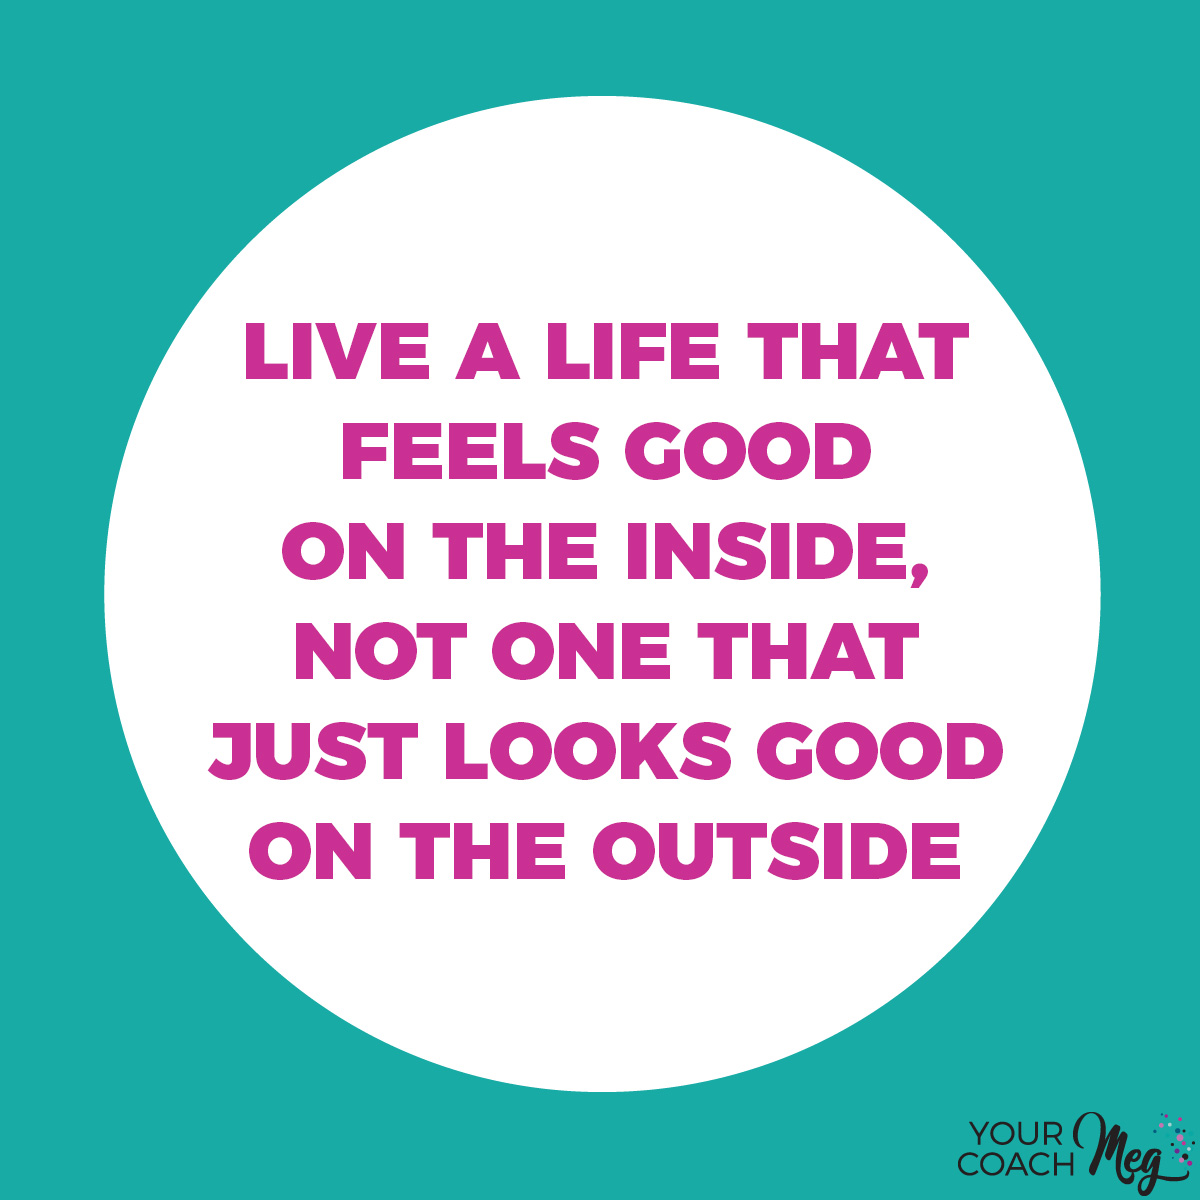 LIVE A LIFE THAT FEELS GOOD ON THE INSIDE NOT ONE THAT JUST LOOKS GOOD ON THE OUTSIDE